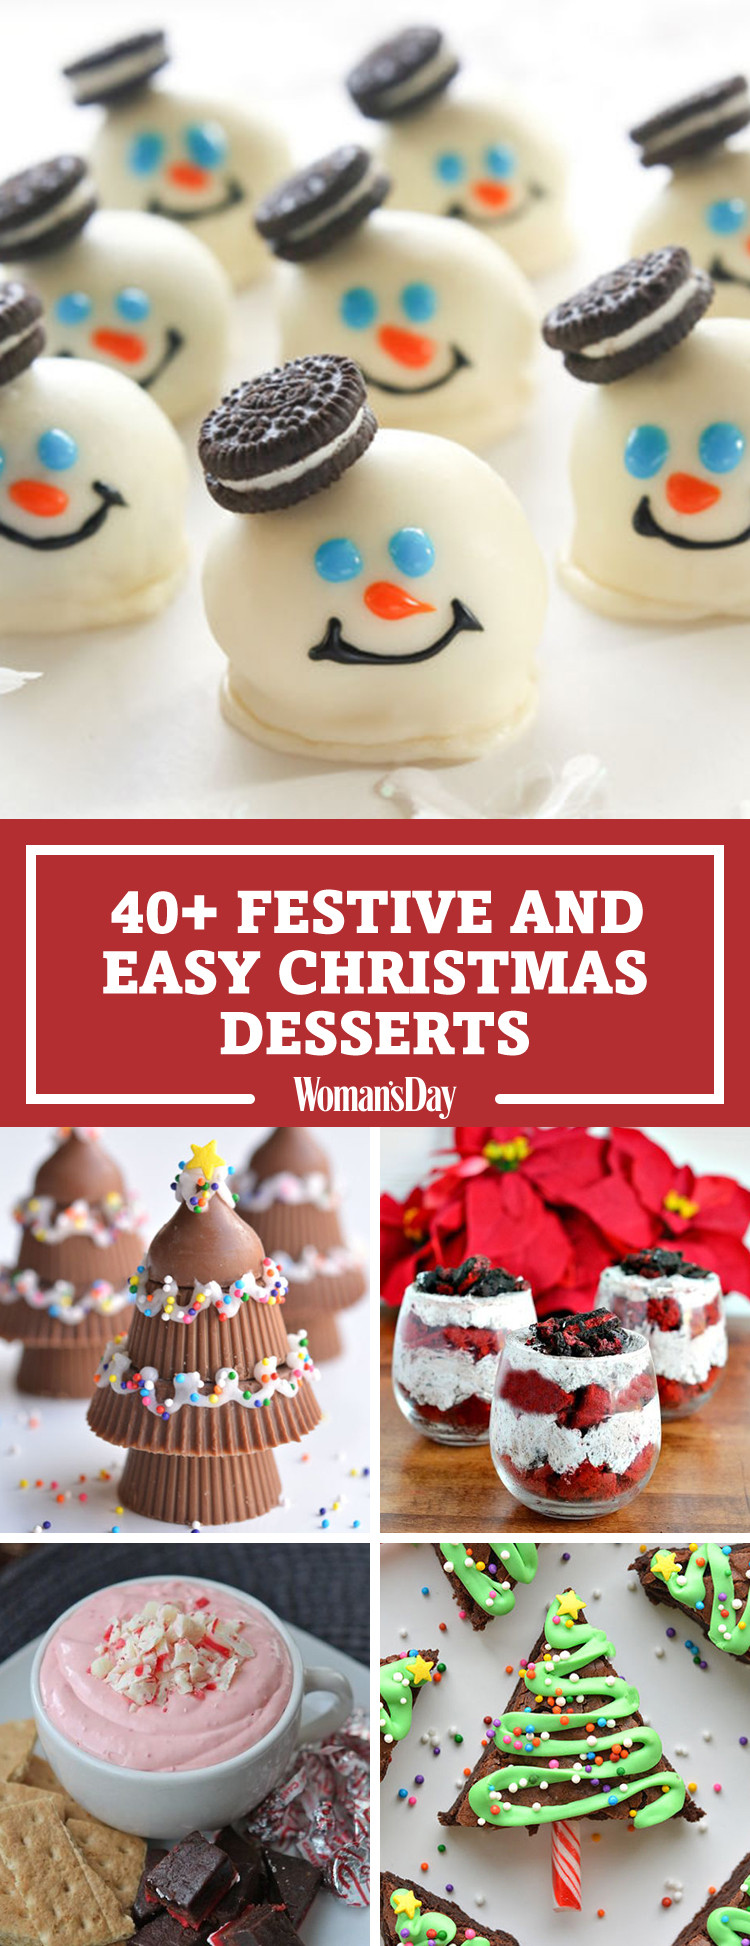 Holiday Desserts For Christmas  57 Easy Christmas Dessert Recipes Best Ideas for Fun